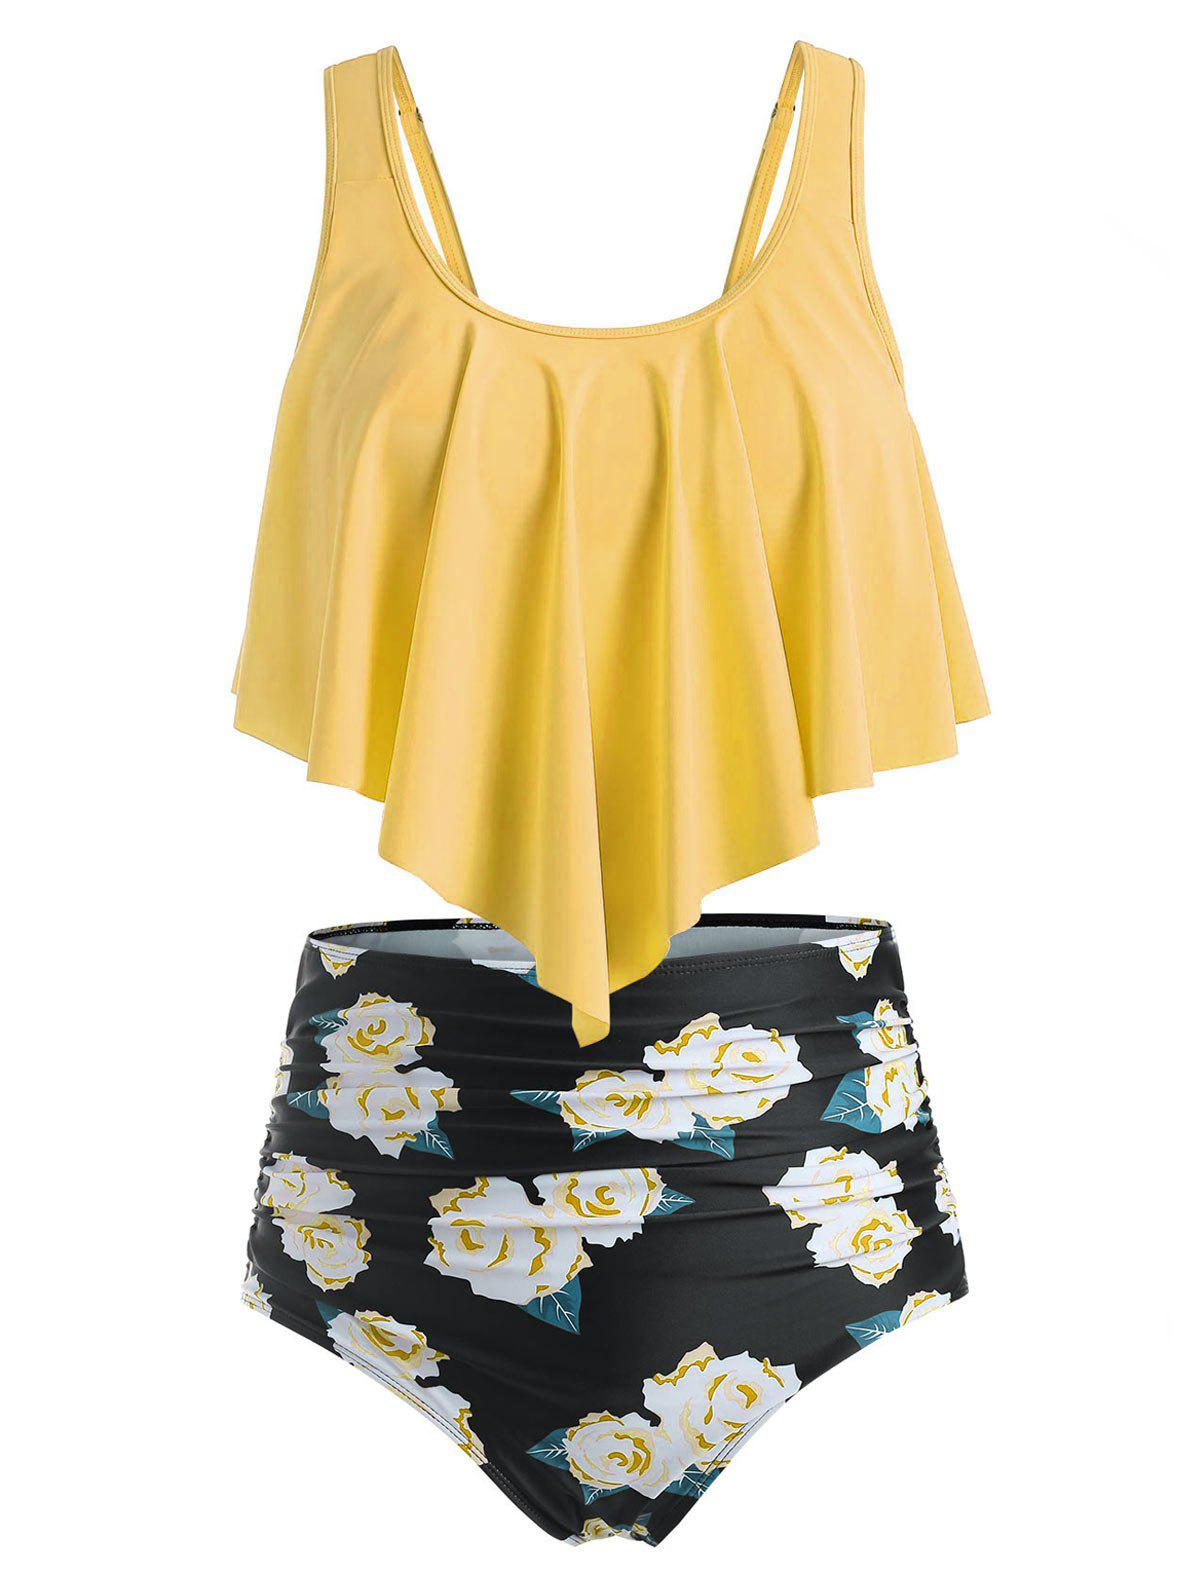 Floral Leaf Ruched Flounce Plus Size Tankini Swimsuit - GOLDENROD 5X